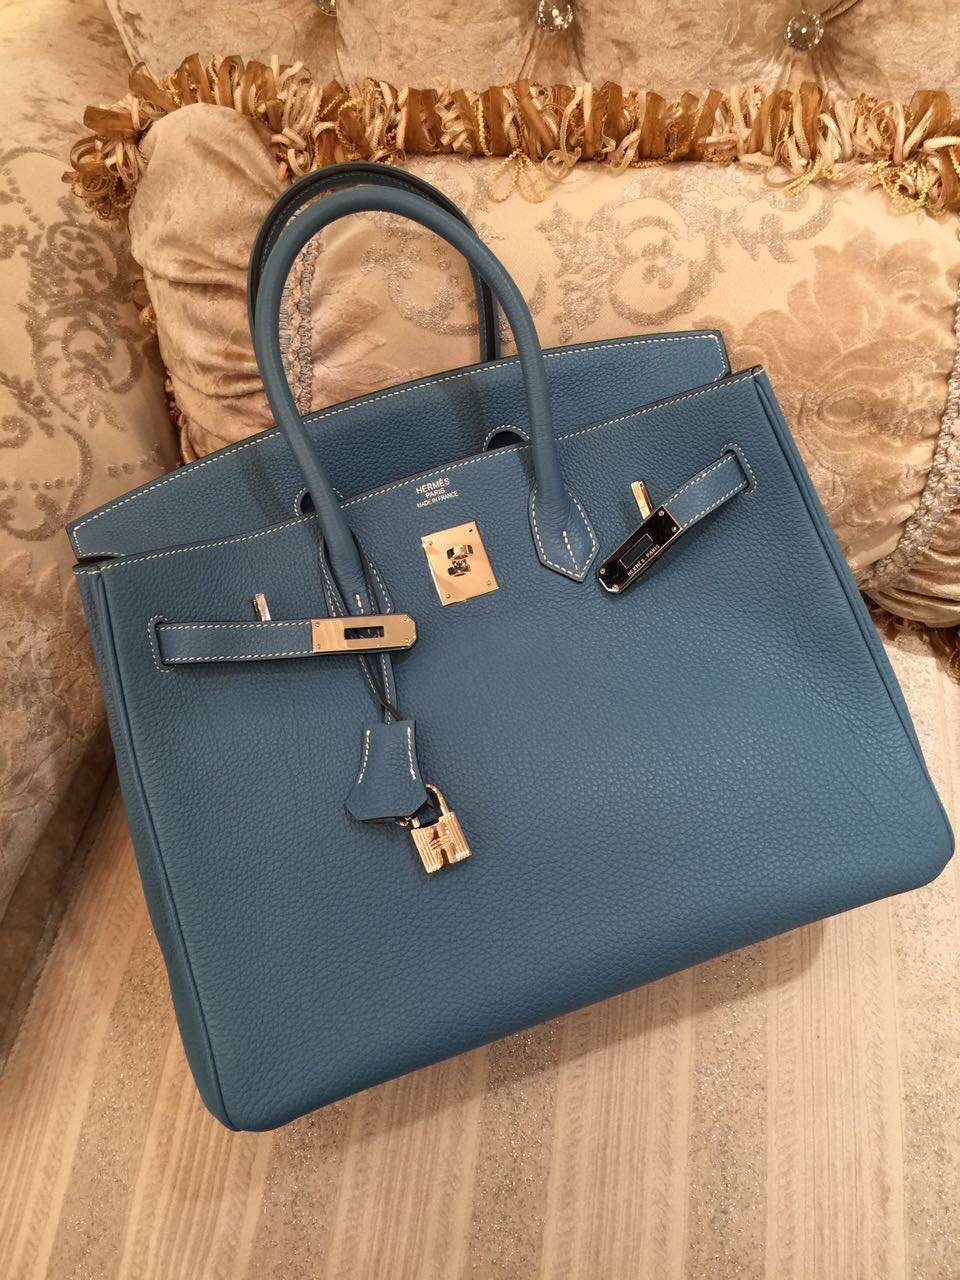 11d0886fa8 40c6d 22d46; sale amazing hermes birkin togo leather gold hardware hewi  london 07840 0aa0d